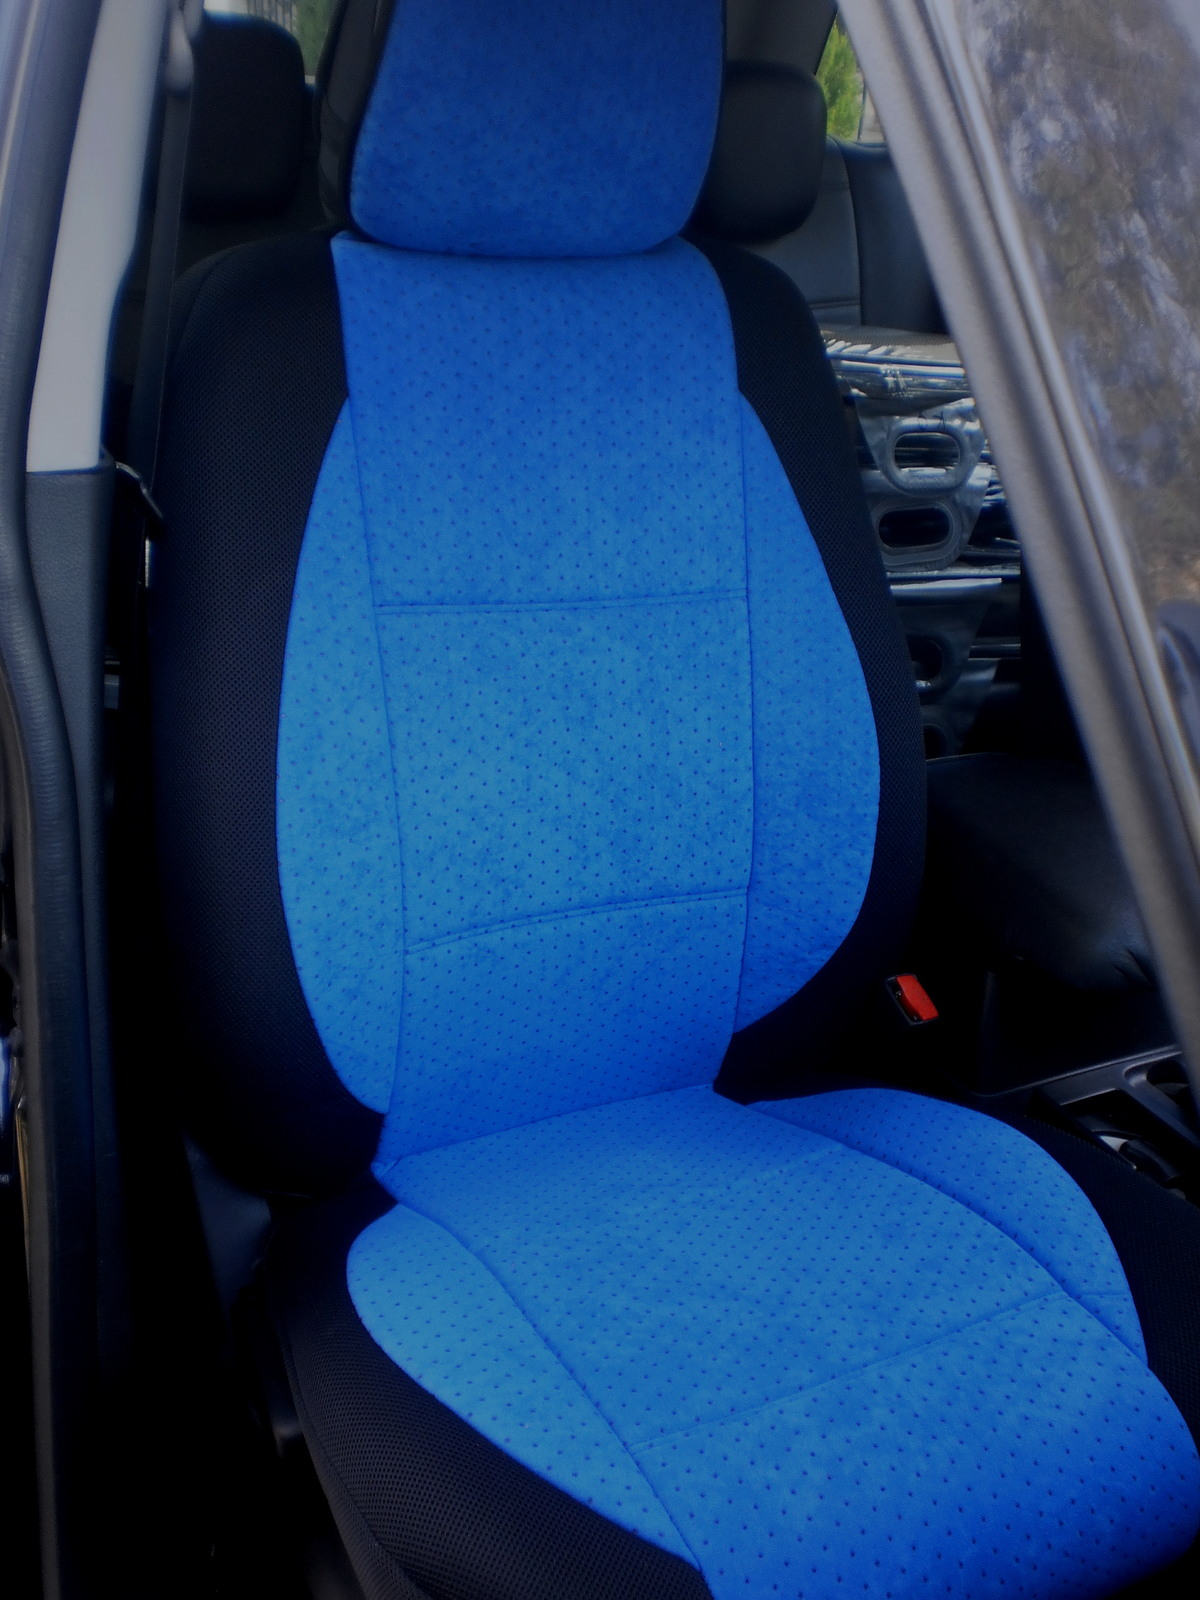 subaru xv crosstrek two front custom velour blue black car seat covers seat covers. Black Bedroom Furniture Sets. Home Design Ideas